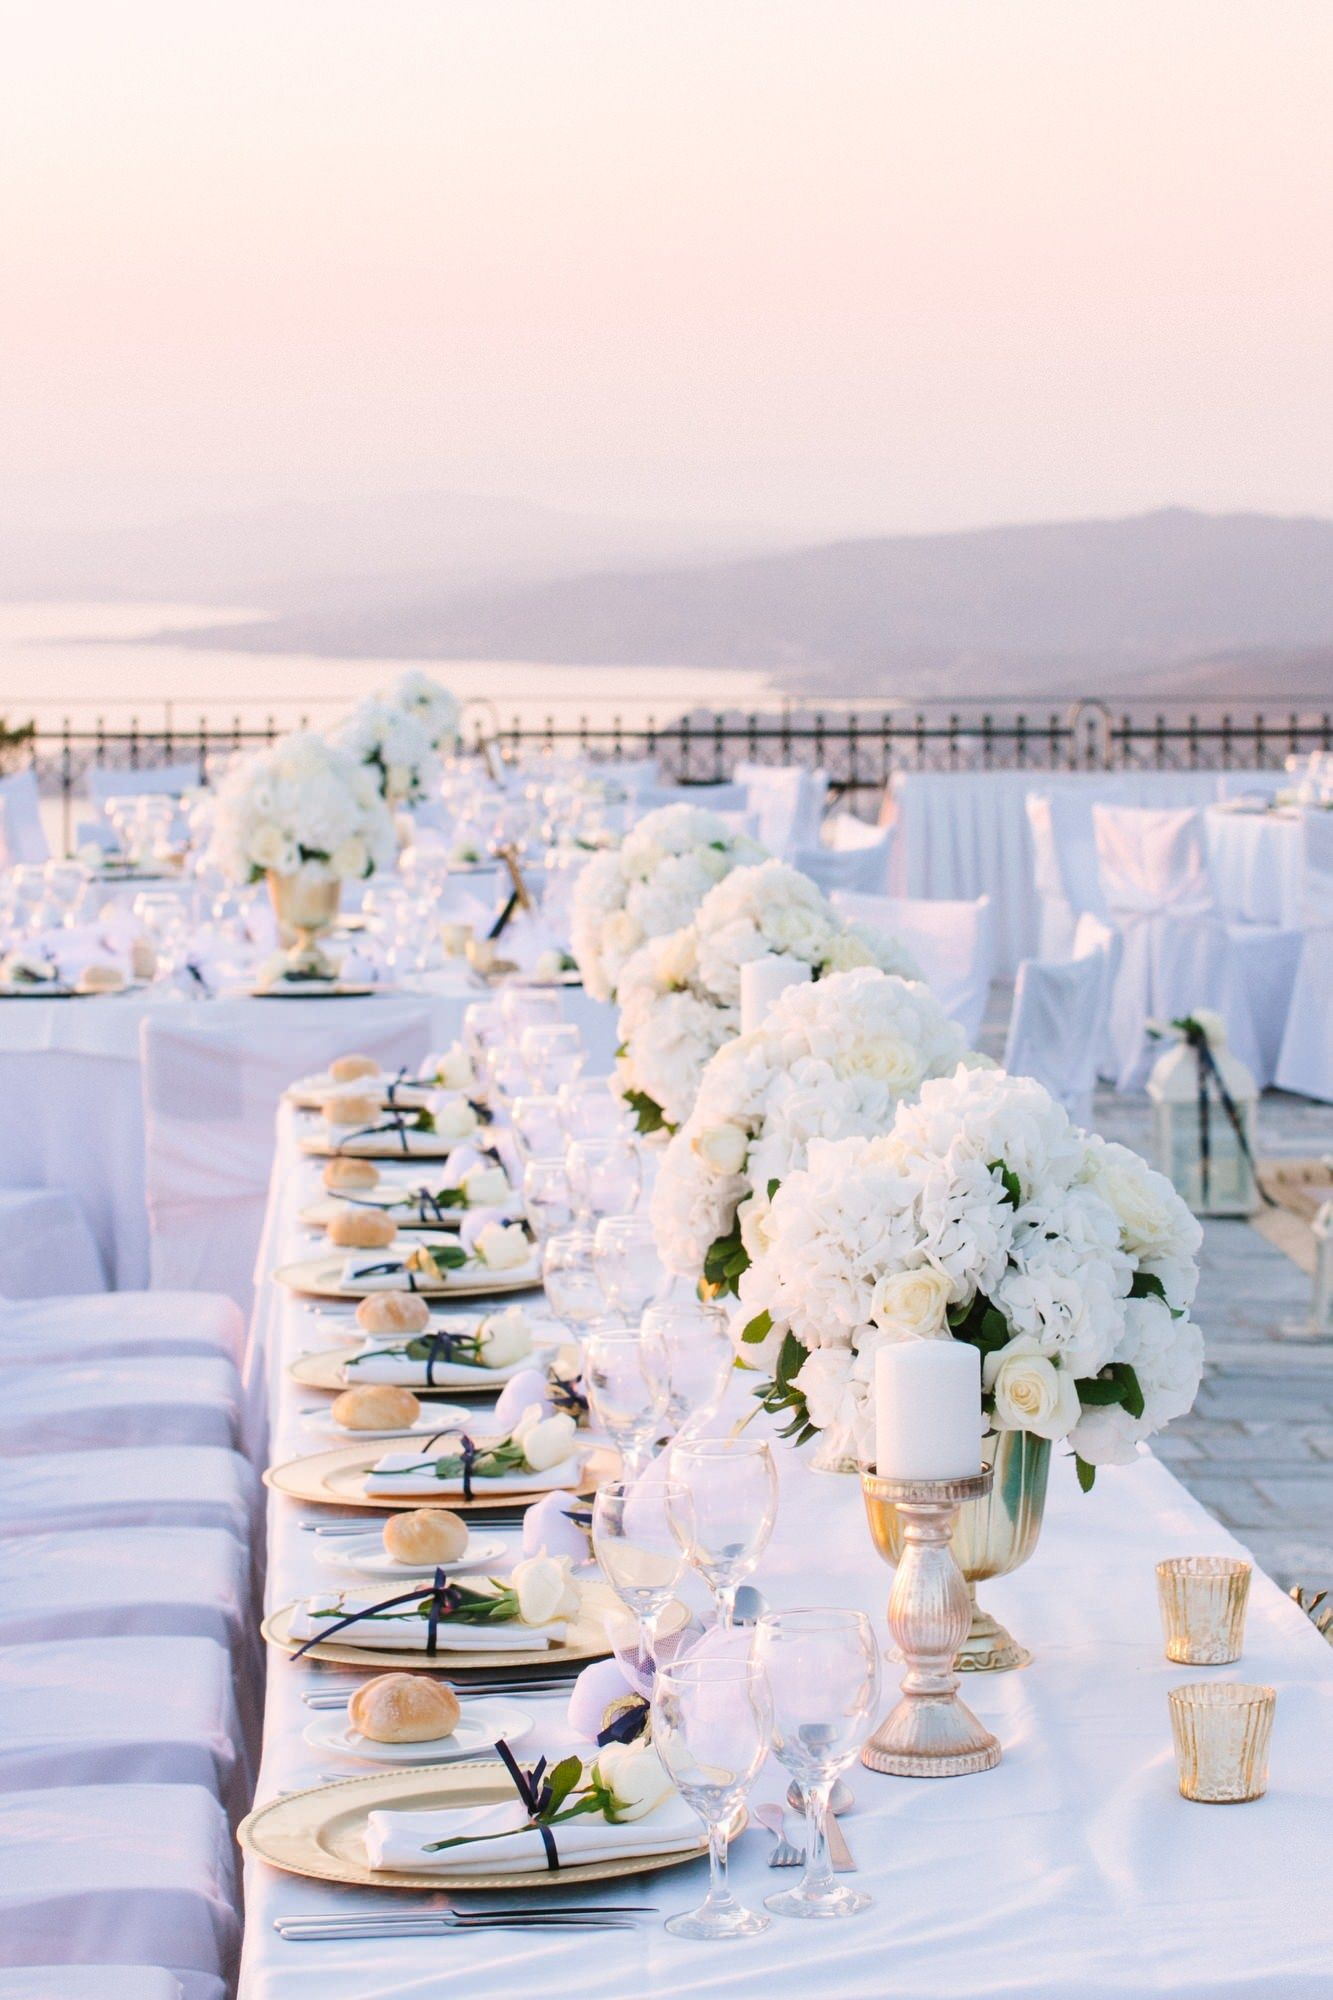 10 Reasons To Have A Destination Wedding Rooftop wedding